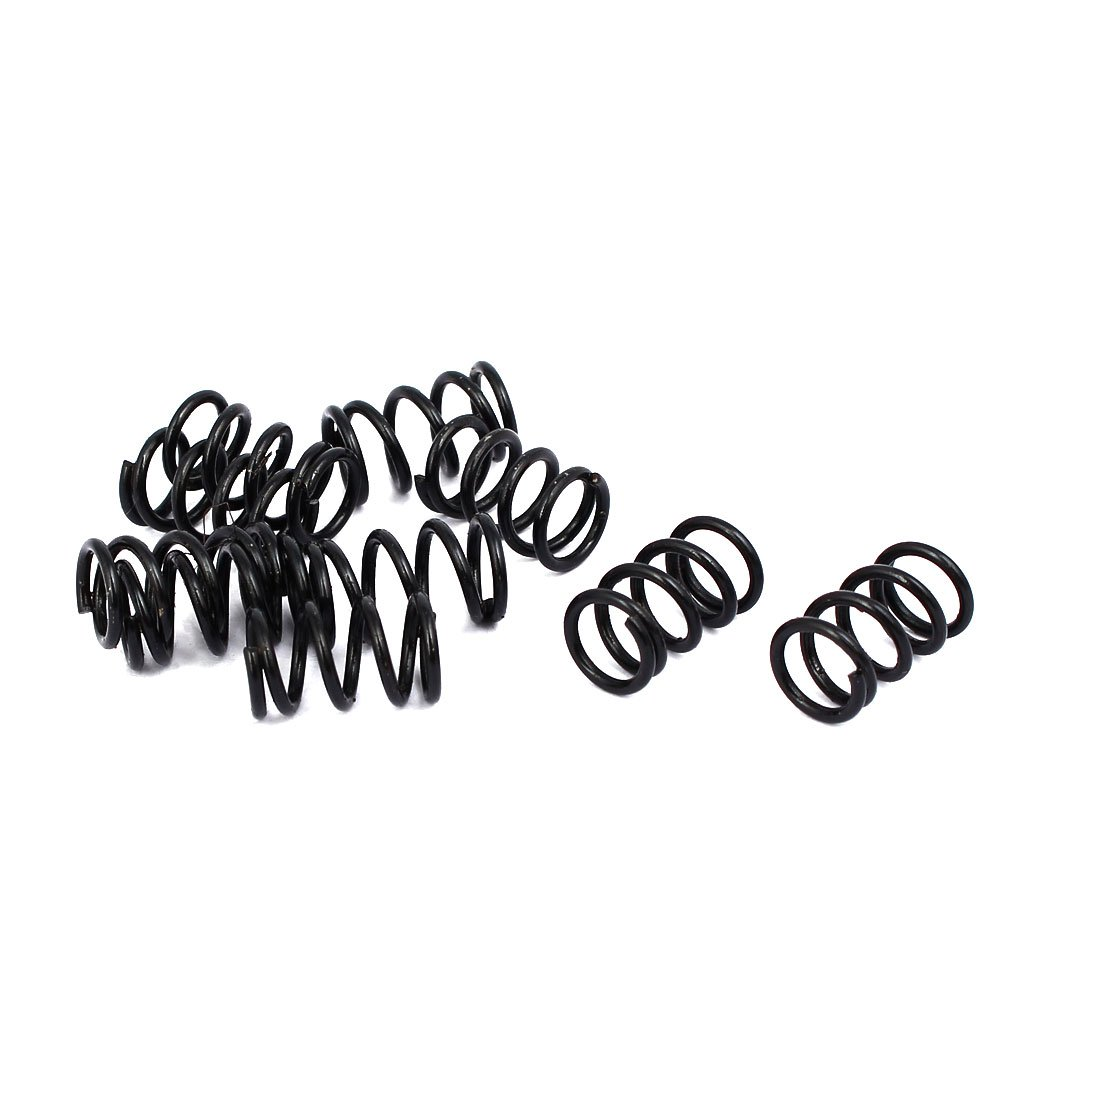 uxcell 1.2mm Wire Dia 9mm Outer Diameter 15mm Long Compression Springs Black 10pcs